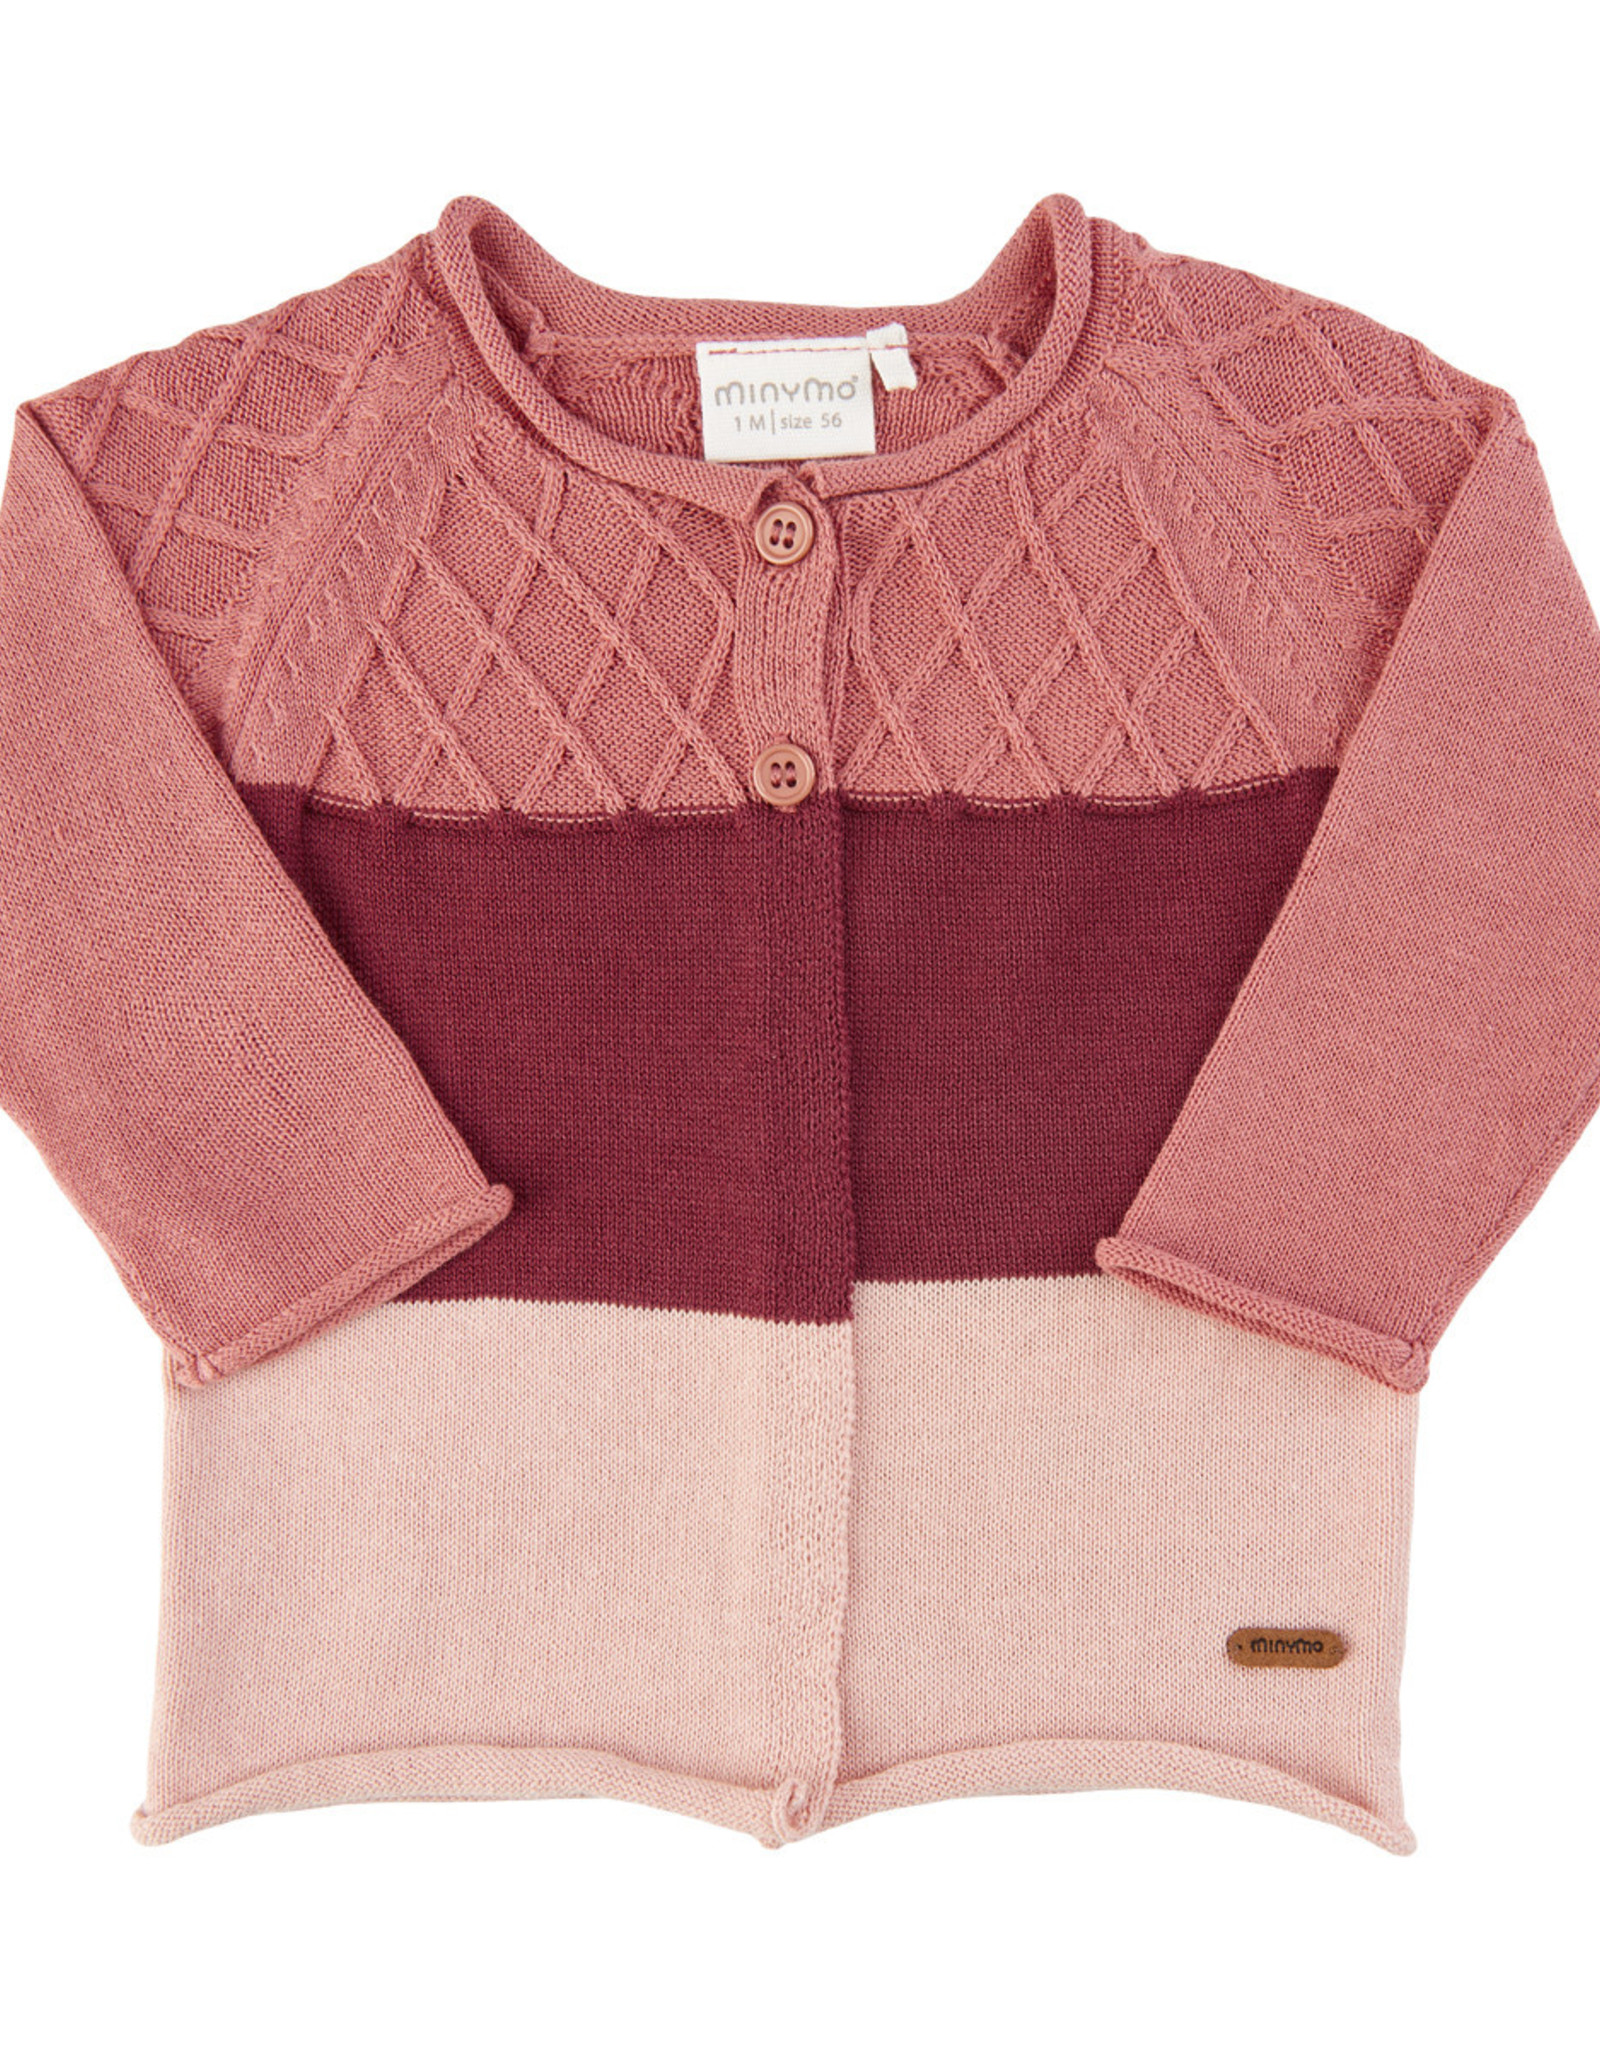 MinyMo FA20 Baby Rose Knit Cardigan